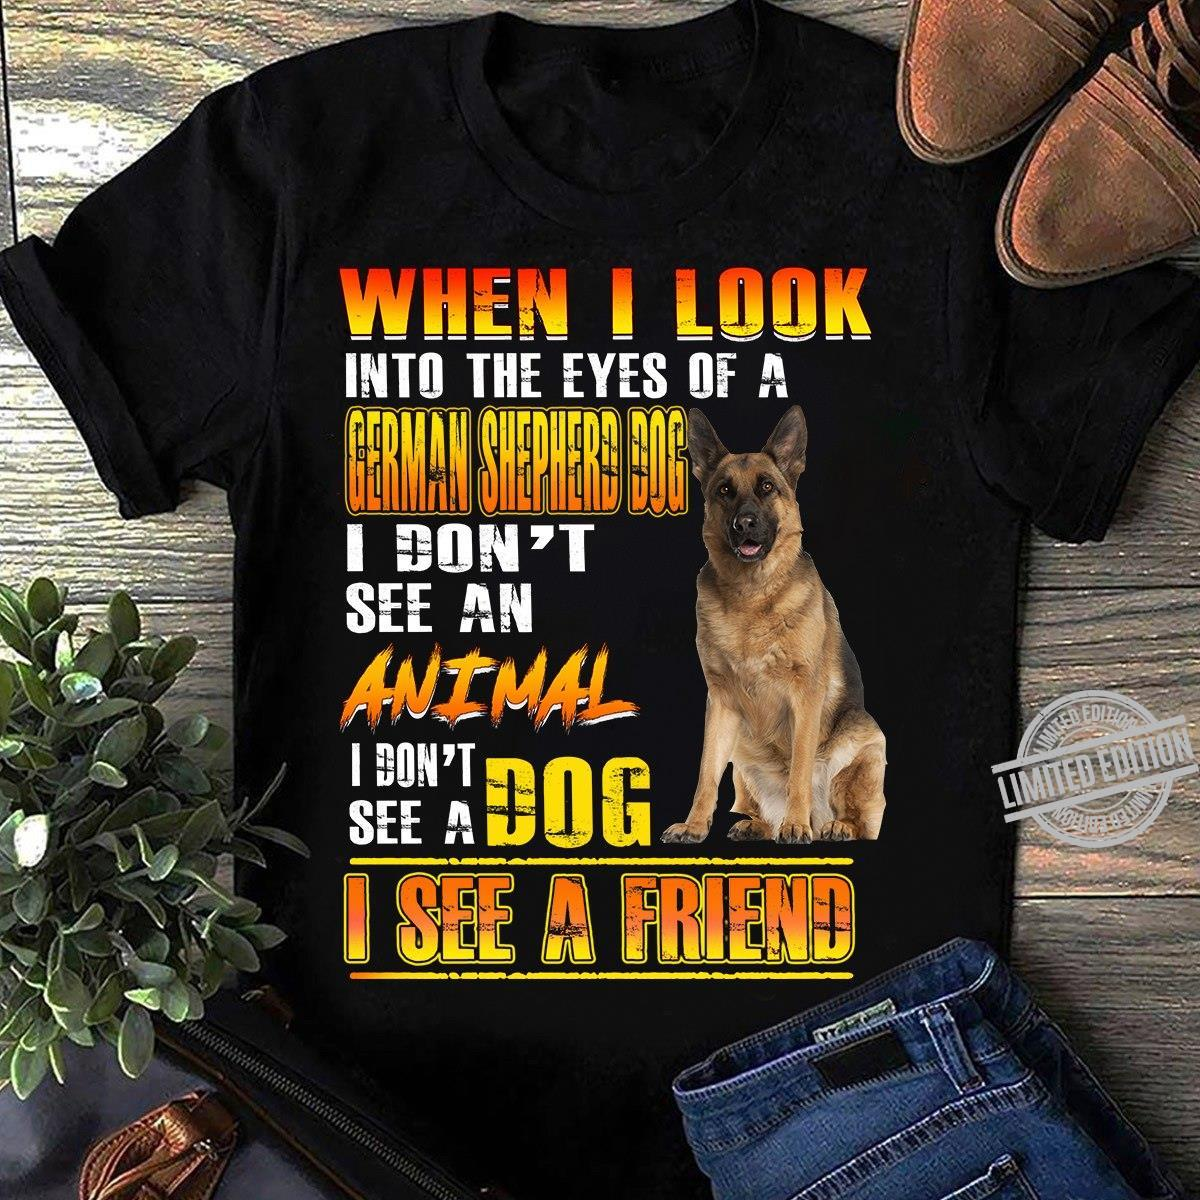 When I Look Into The Eyes Of A German Shepherd Dog I Don't See An Animal I Don't See A Dog I See A Friend Shirt